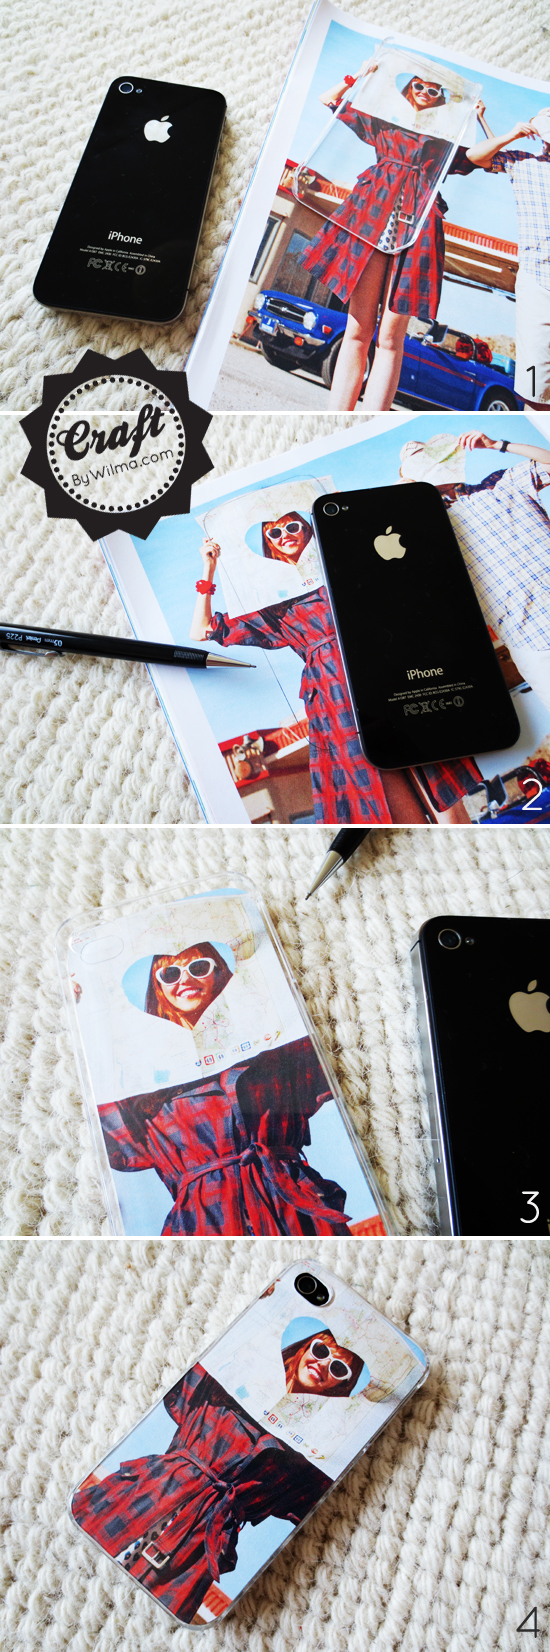 DIY - How to make a iPhone photo case. This is the easiest and cheapest way to do it!